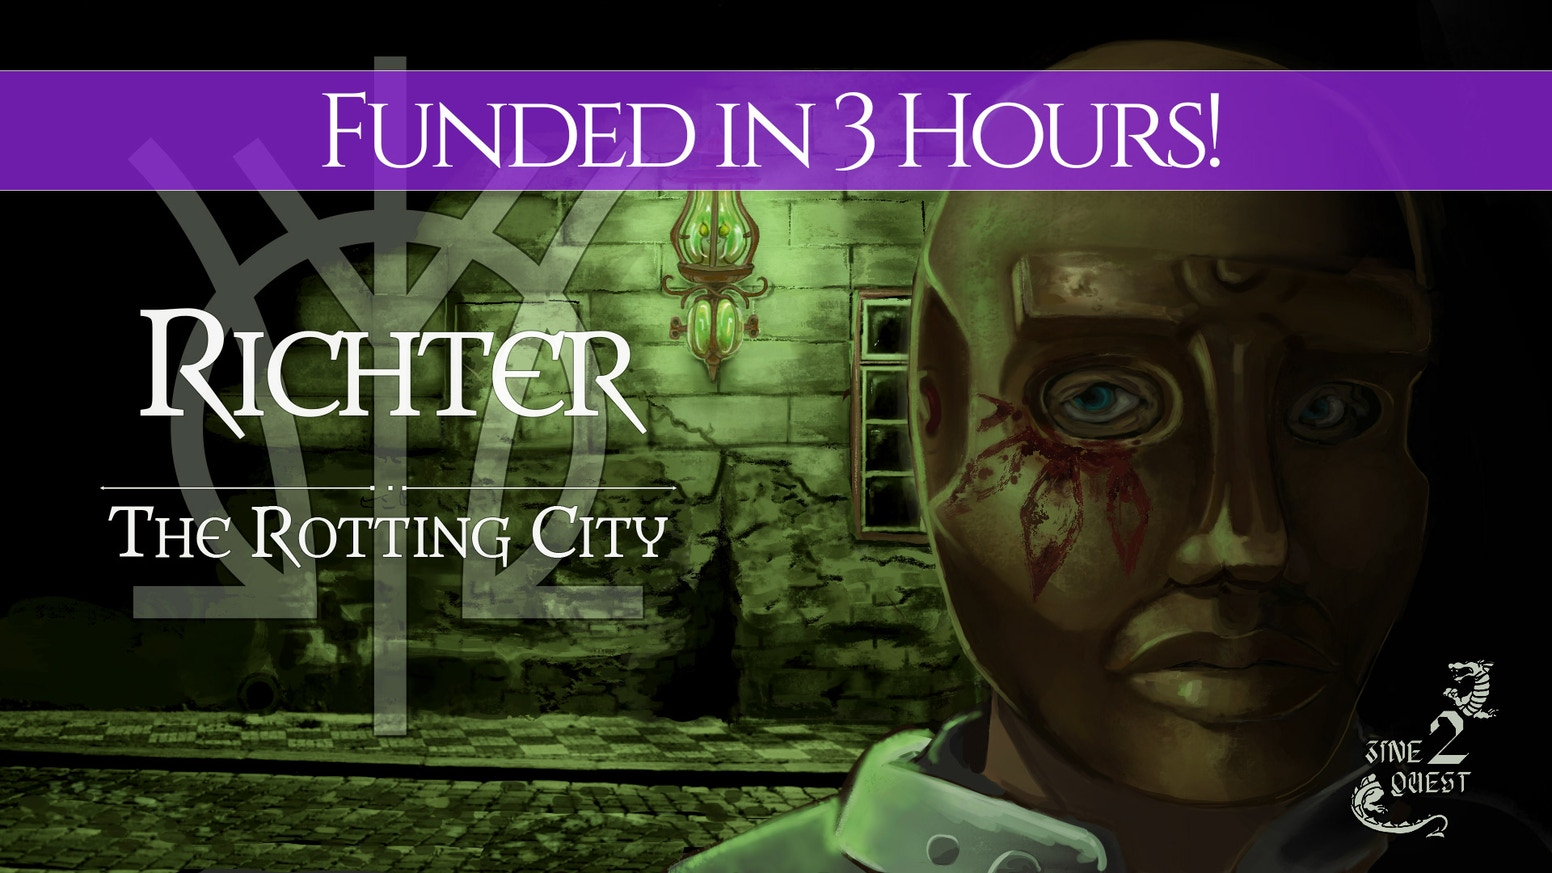 A system-agnostic city, Richter: The Rotting City, for tabletop-role-playing games.